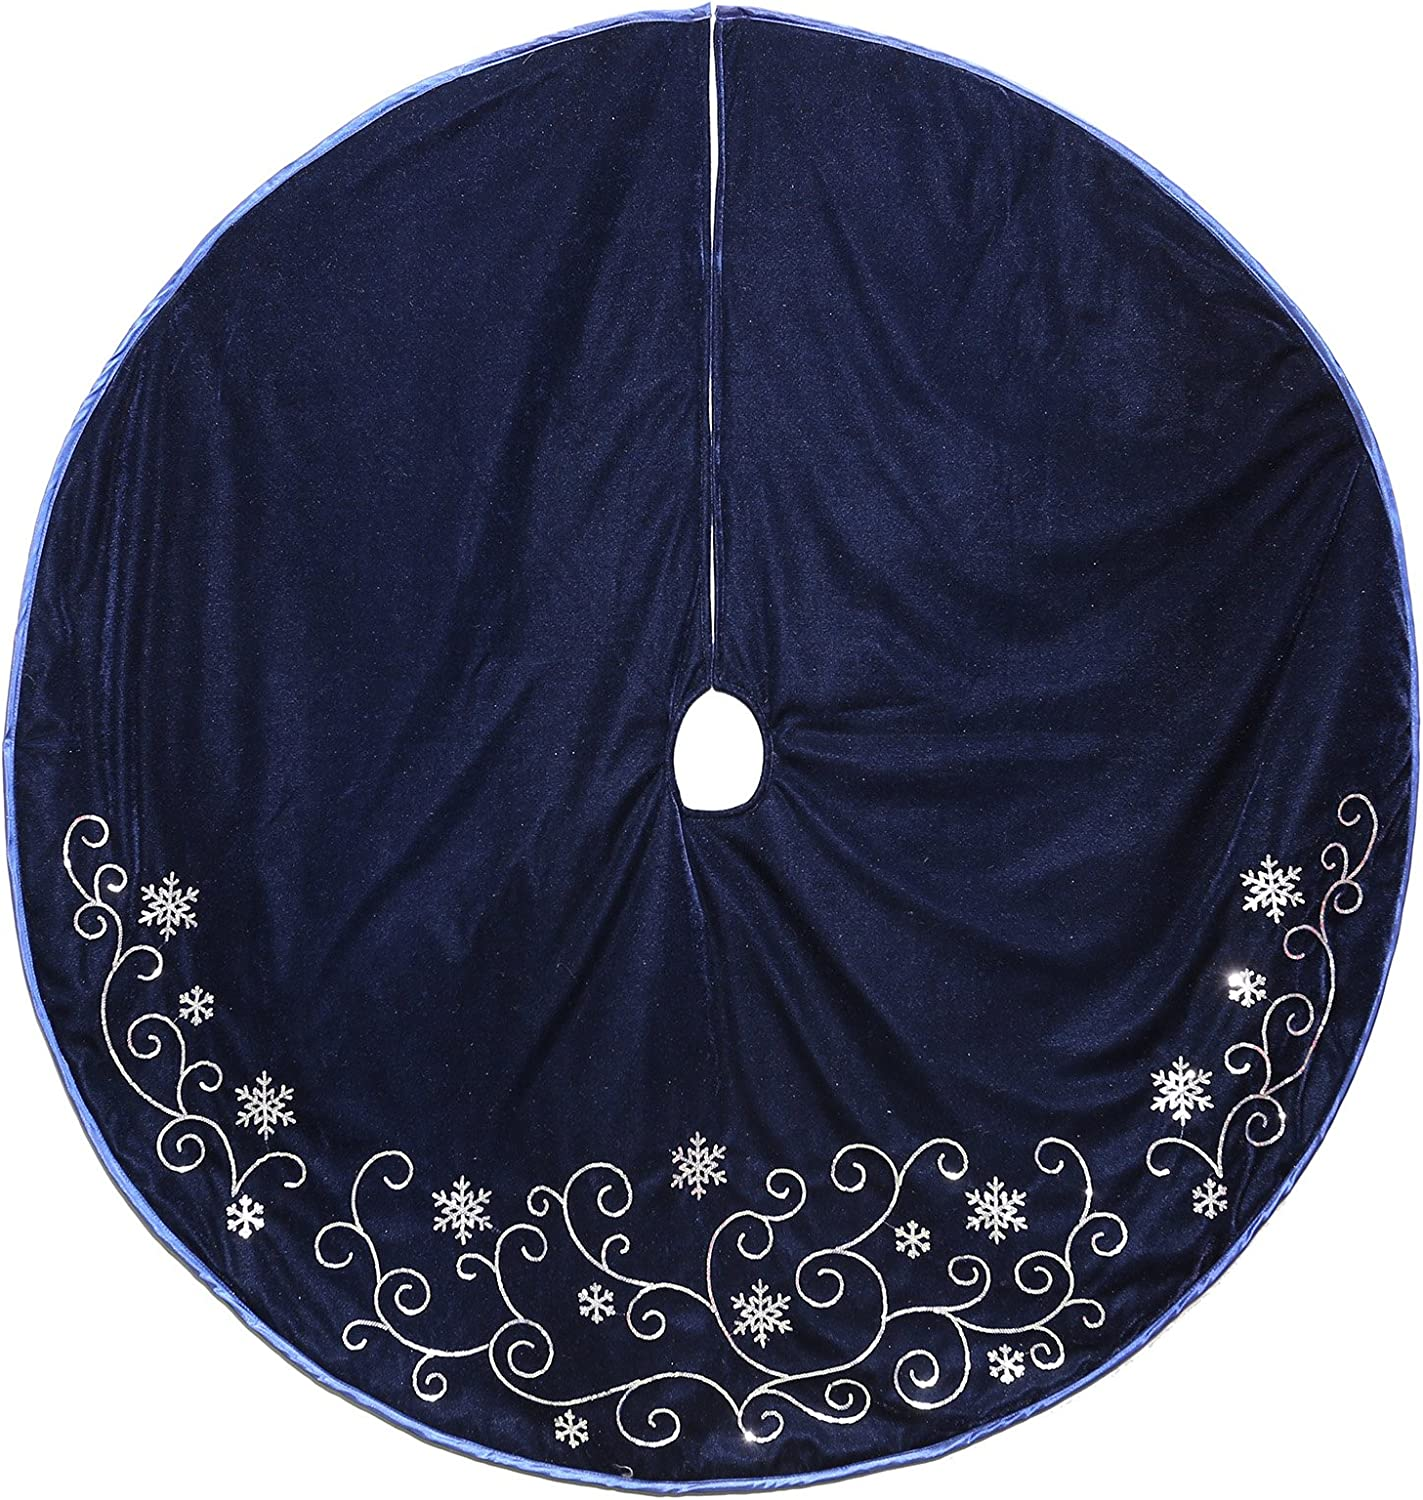 New Traditions Simplify Your Holiday Velvet Christmas Decor with Embroidered Sequin Taffeta Piping and Snowflakes (Tree Skirt)